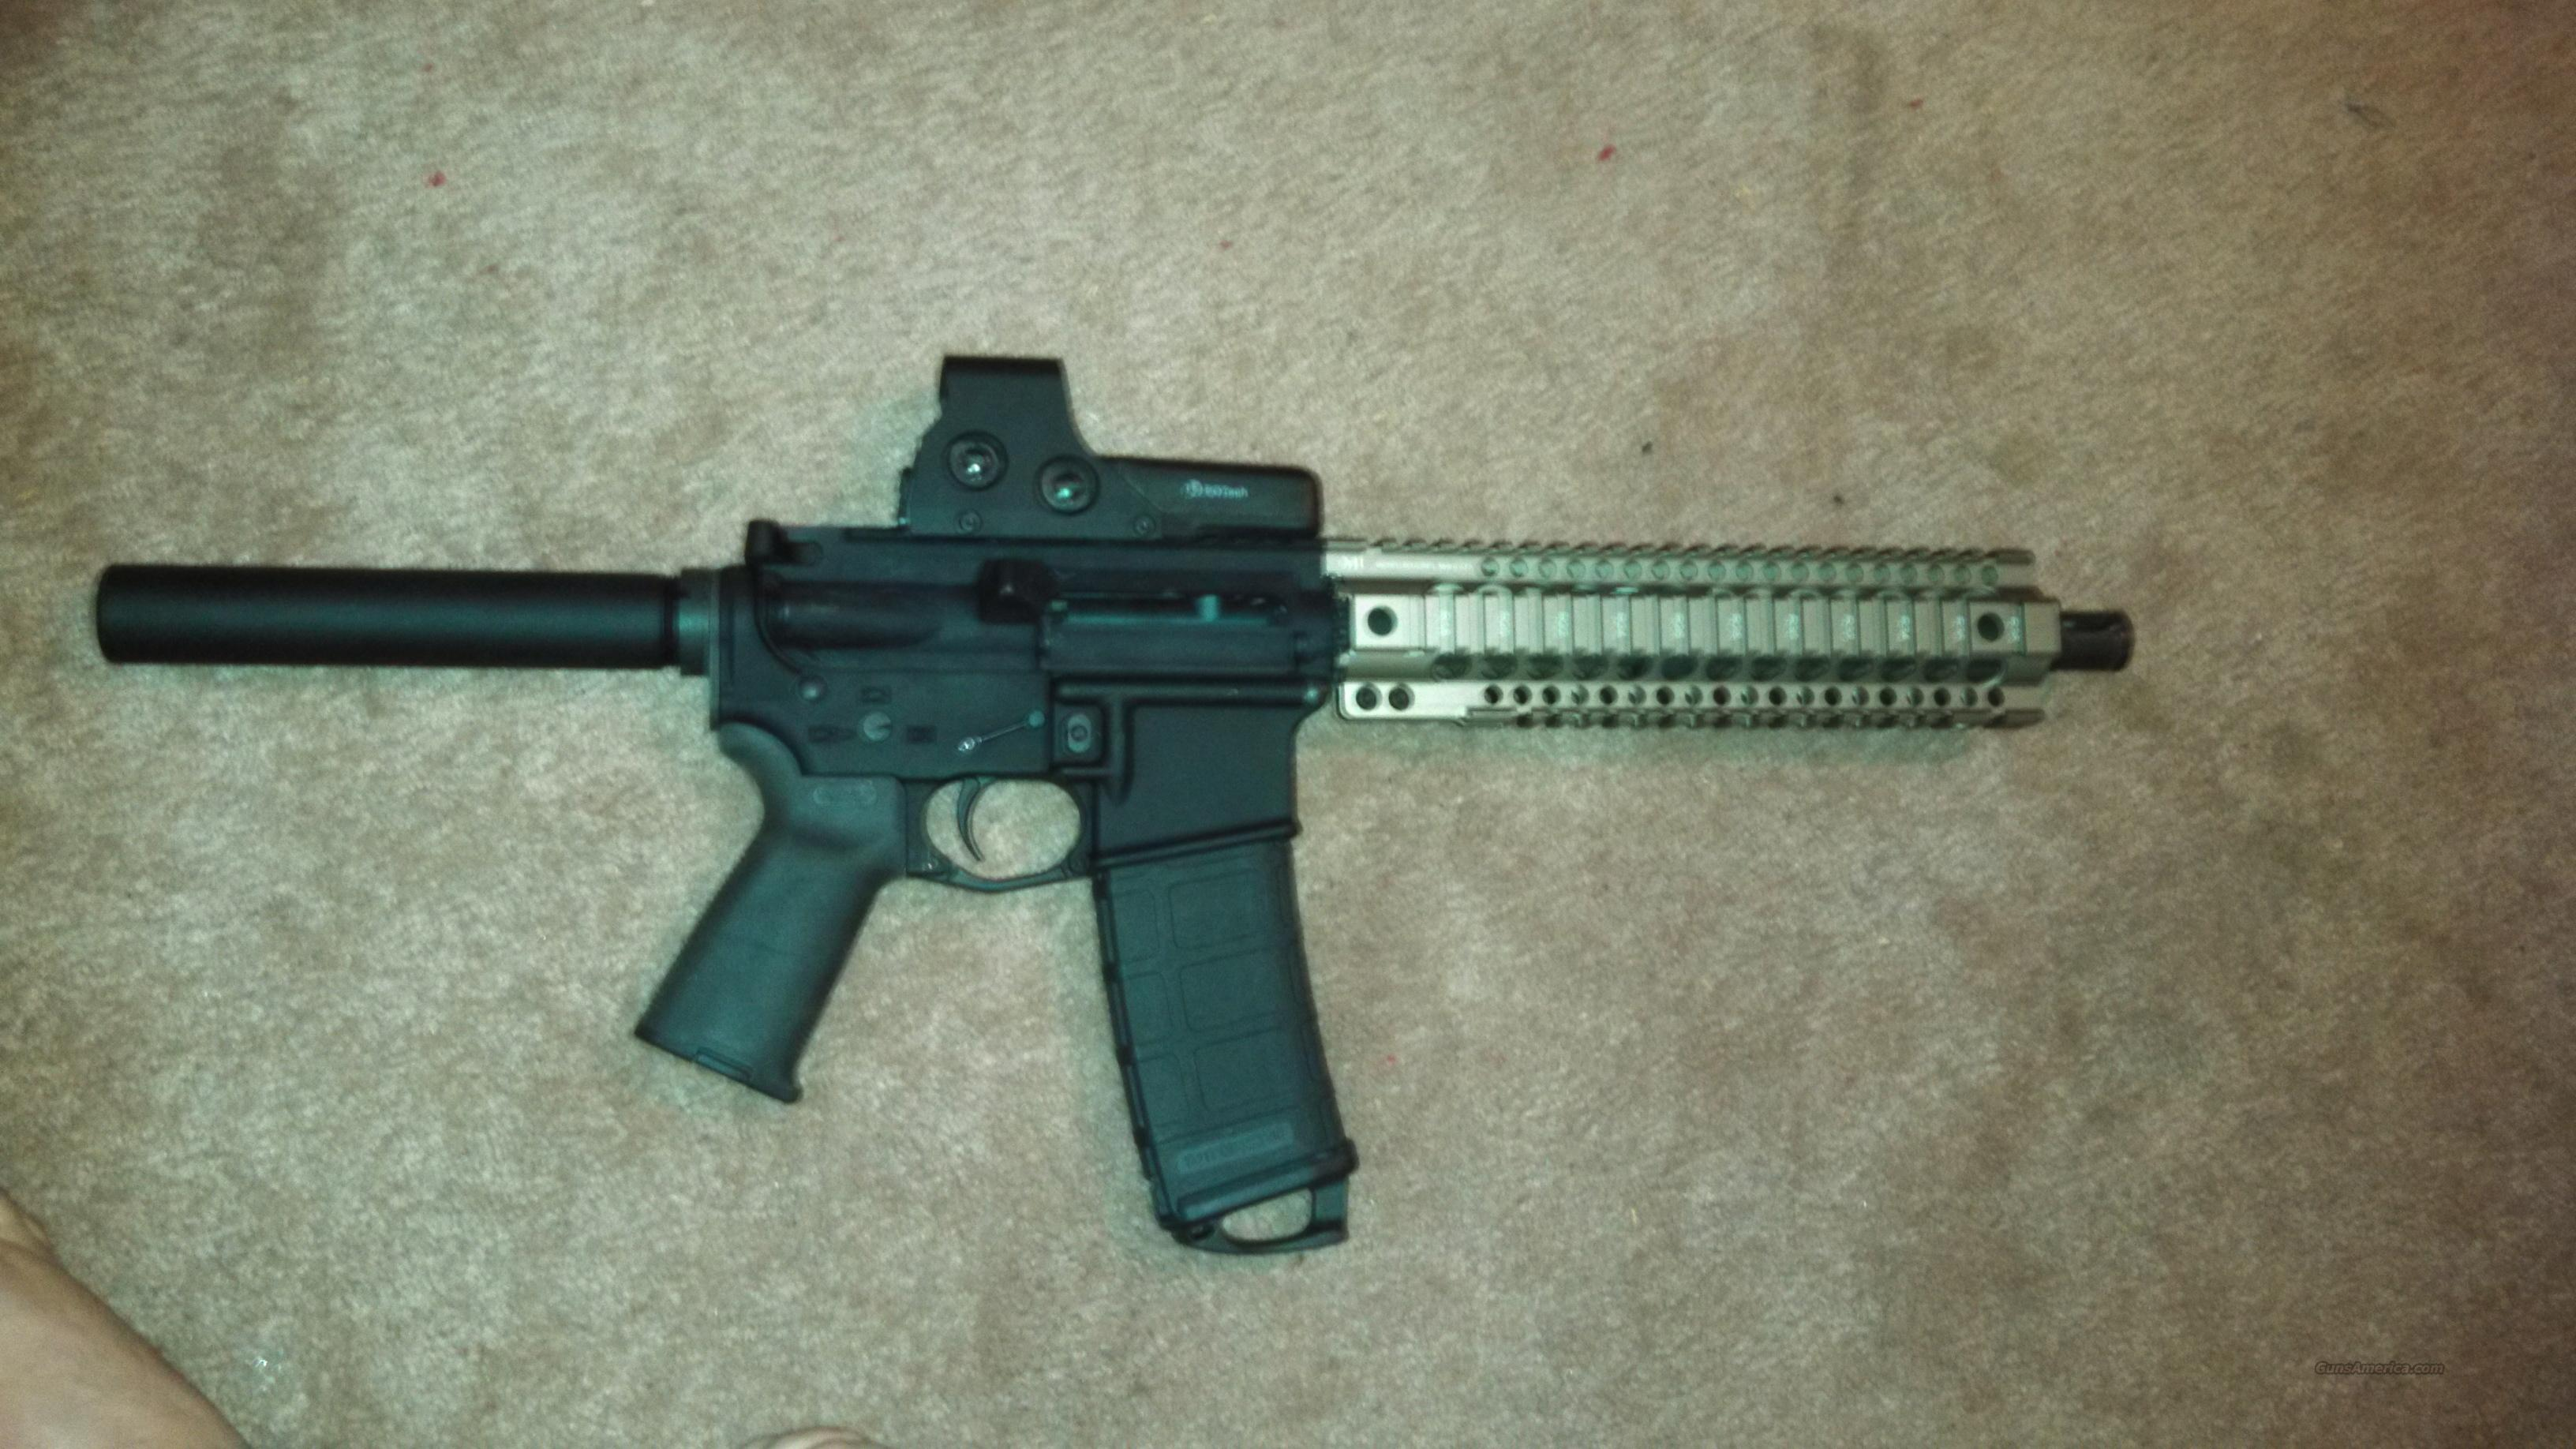 300 BLACKOUT PISTOL!!!!SPIKES LOWER SPIDER W/ BULLET MARKINGS  Guns > Rifles > AR-15 Rifles - Small Manufacturers > Complete Rifle